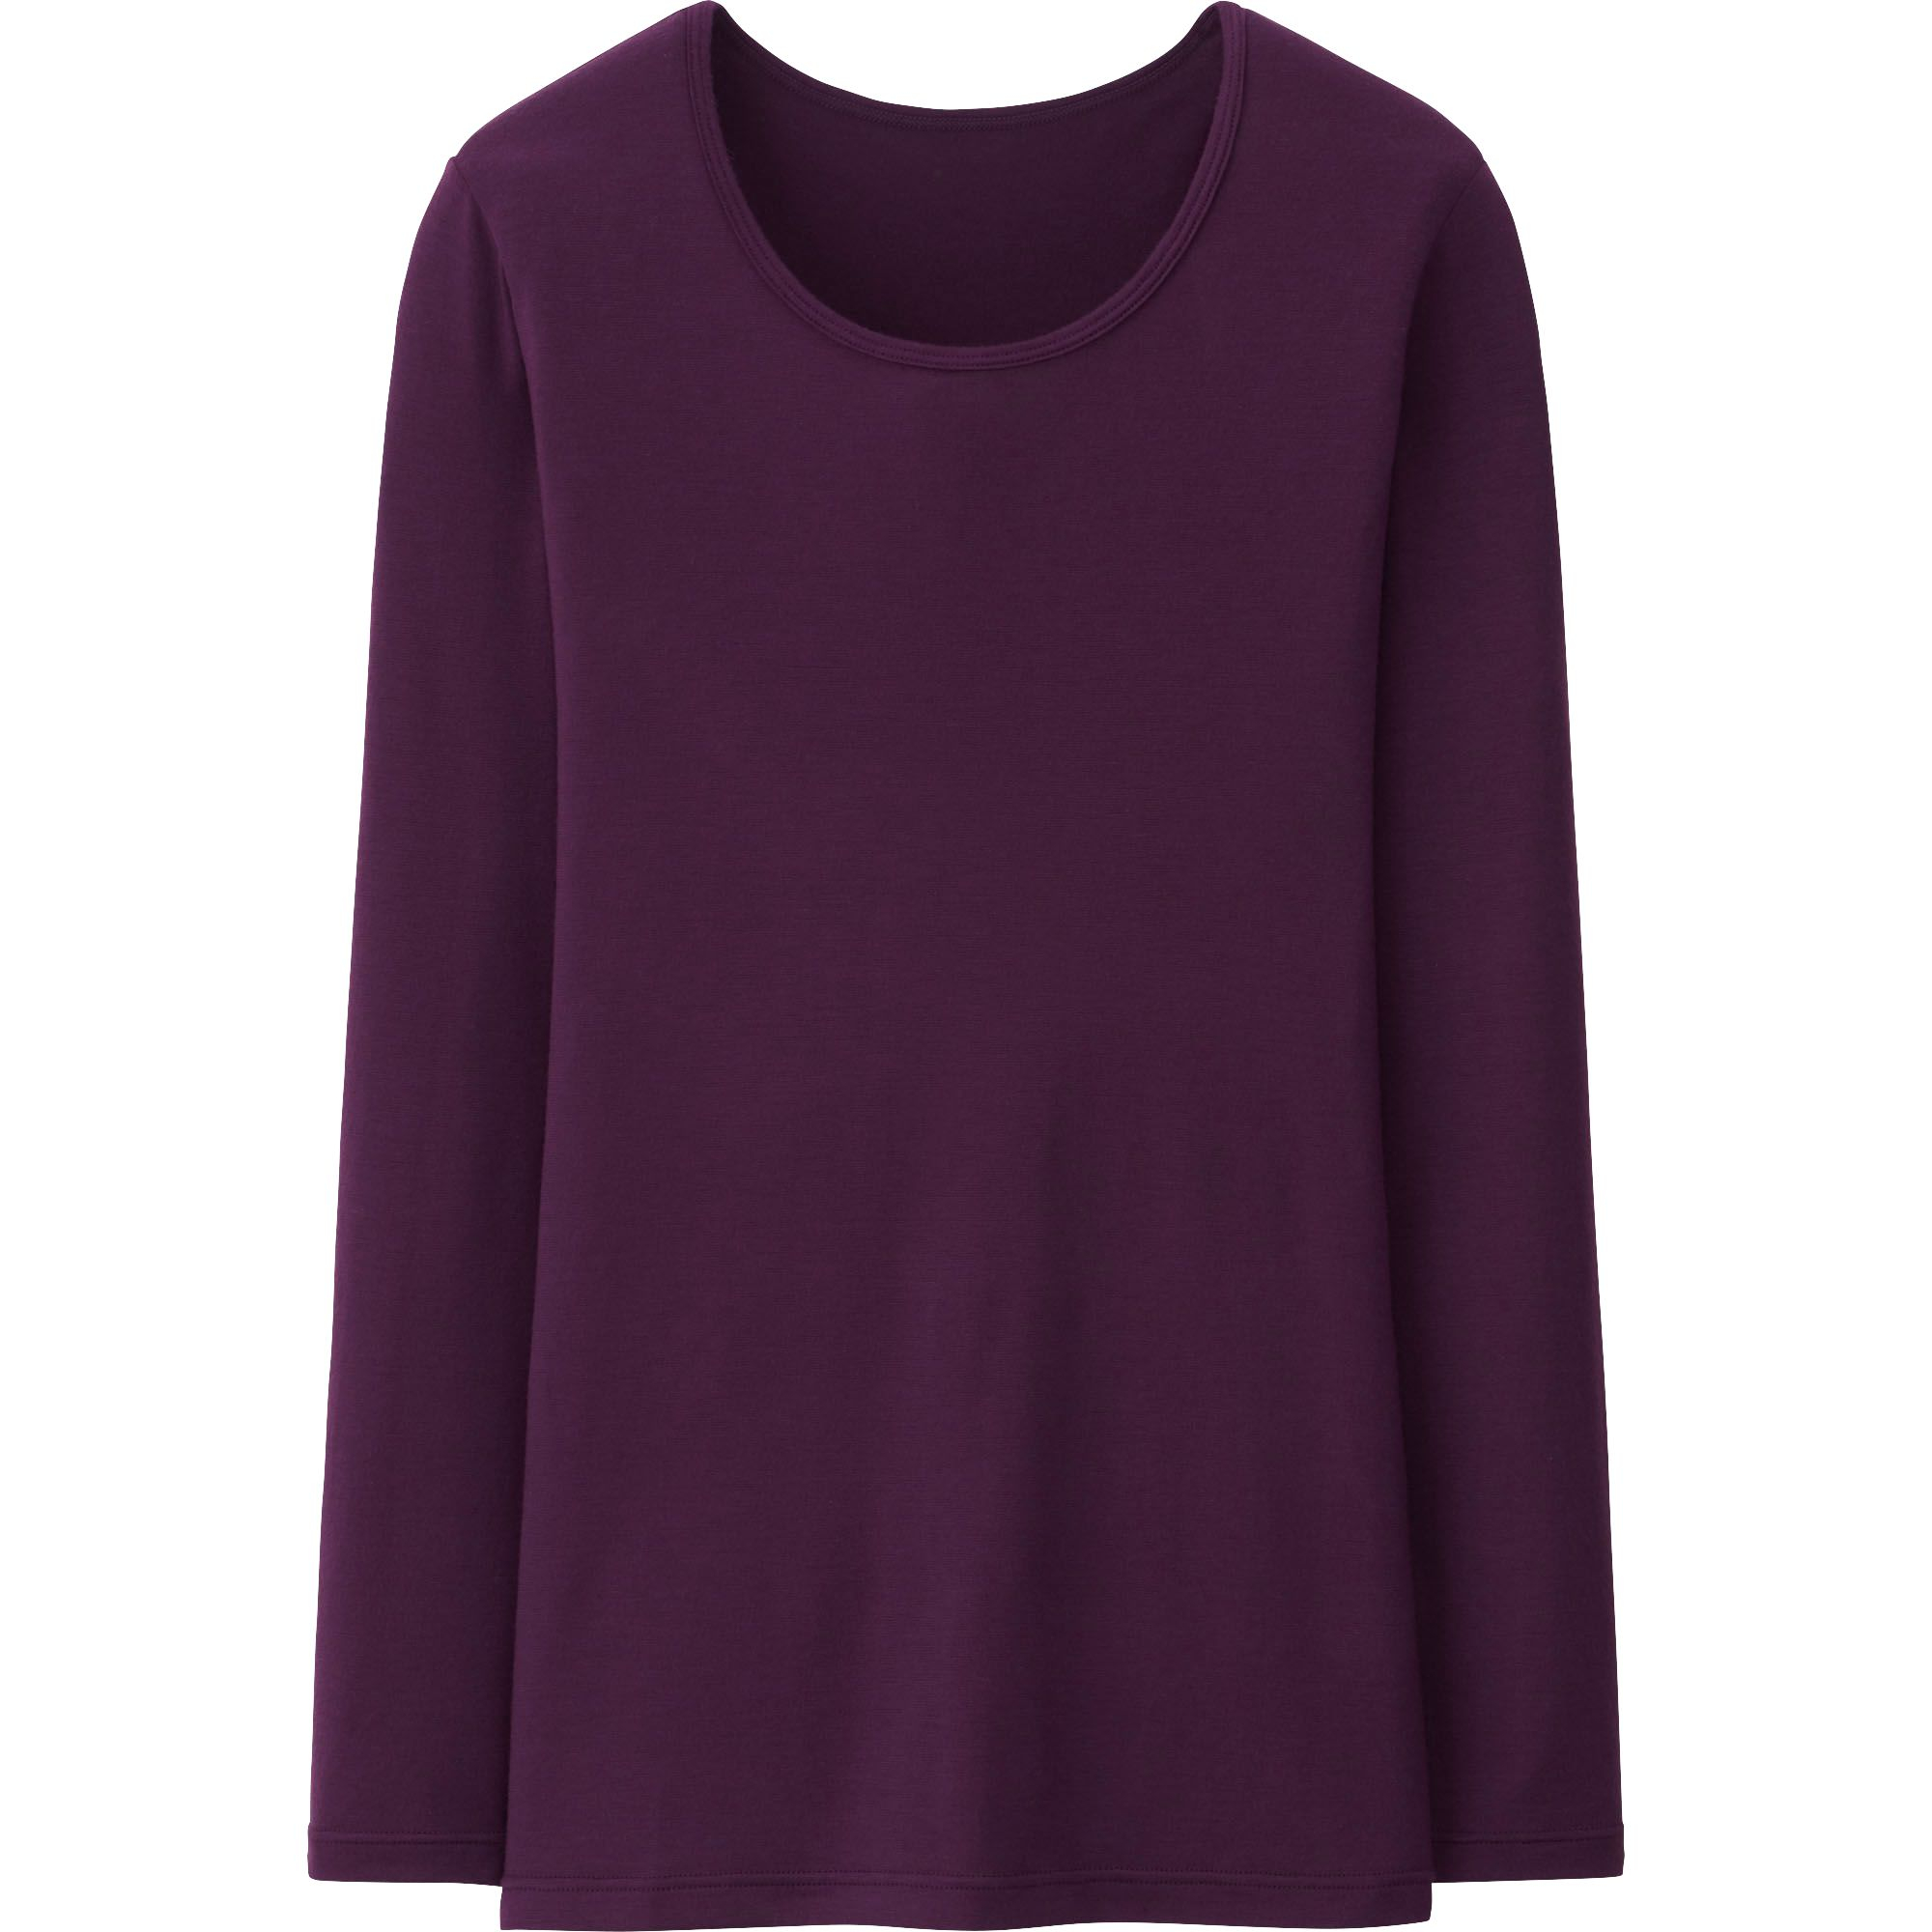 Uniqlo heattech crew neck long sleeve t shirt in purple for Women s crew t shirts